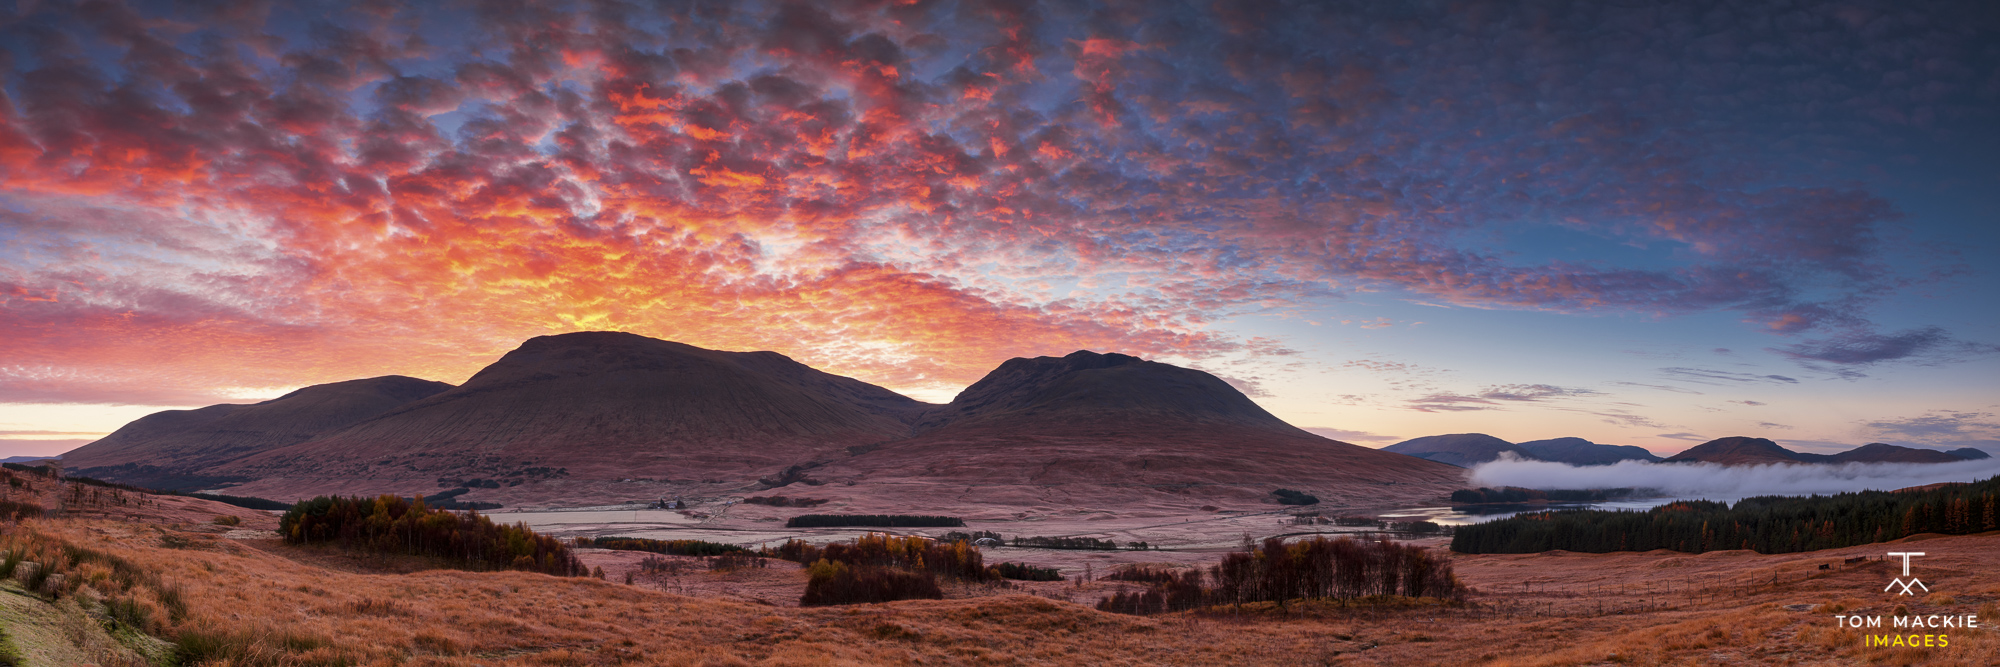 Sunrise from Loch Tulla Viewpoint, Argyll and Bute, Scotland